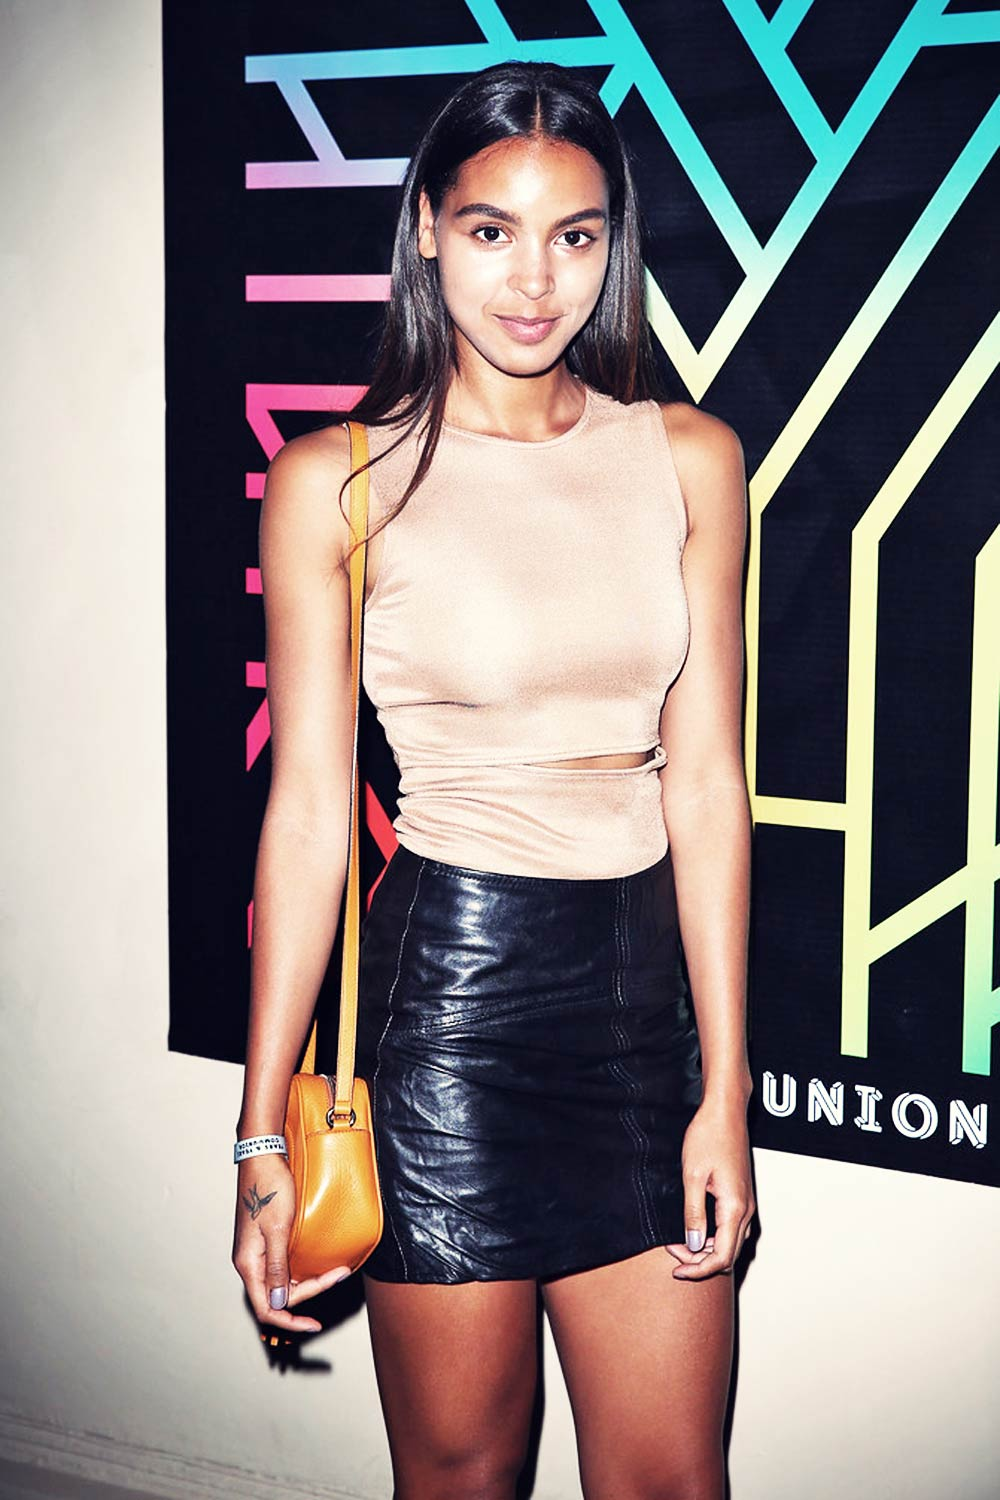 Arlissa attends the Years & Years VIP album launch party